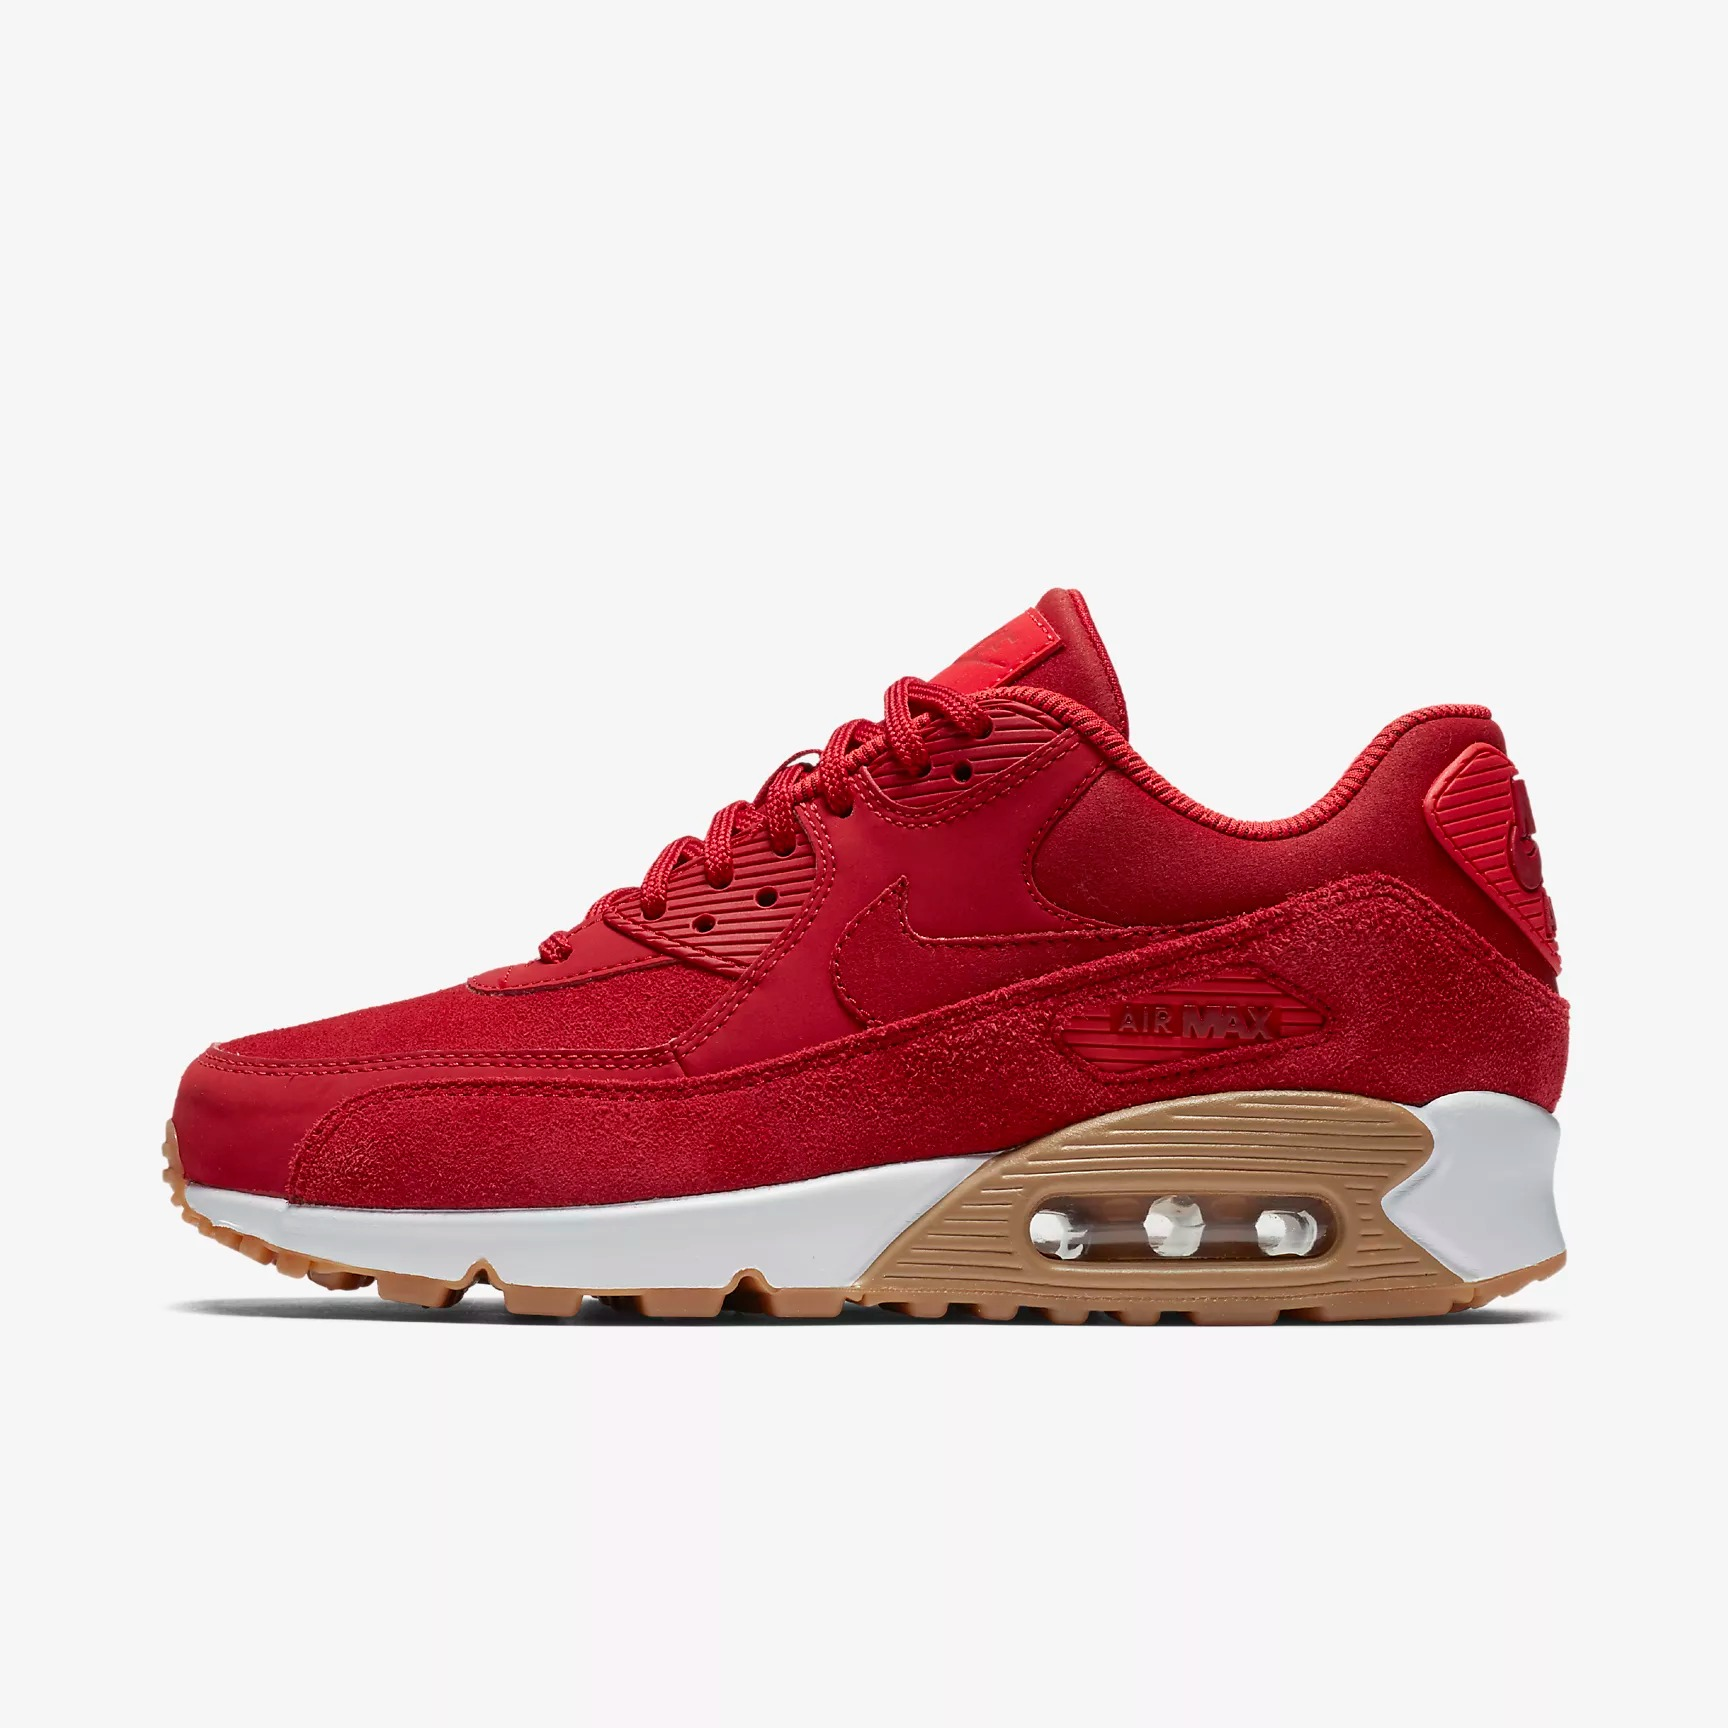 nike wmns air max 90 se sneakers sport shoes athletic shoes and sneakers. Black Bedroom Furniture Sets. Home Design Ideas